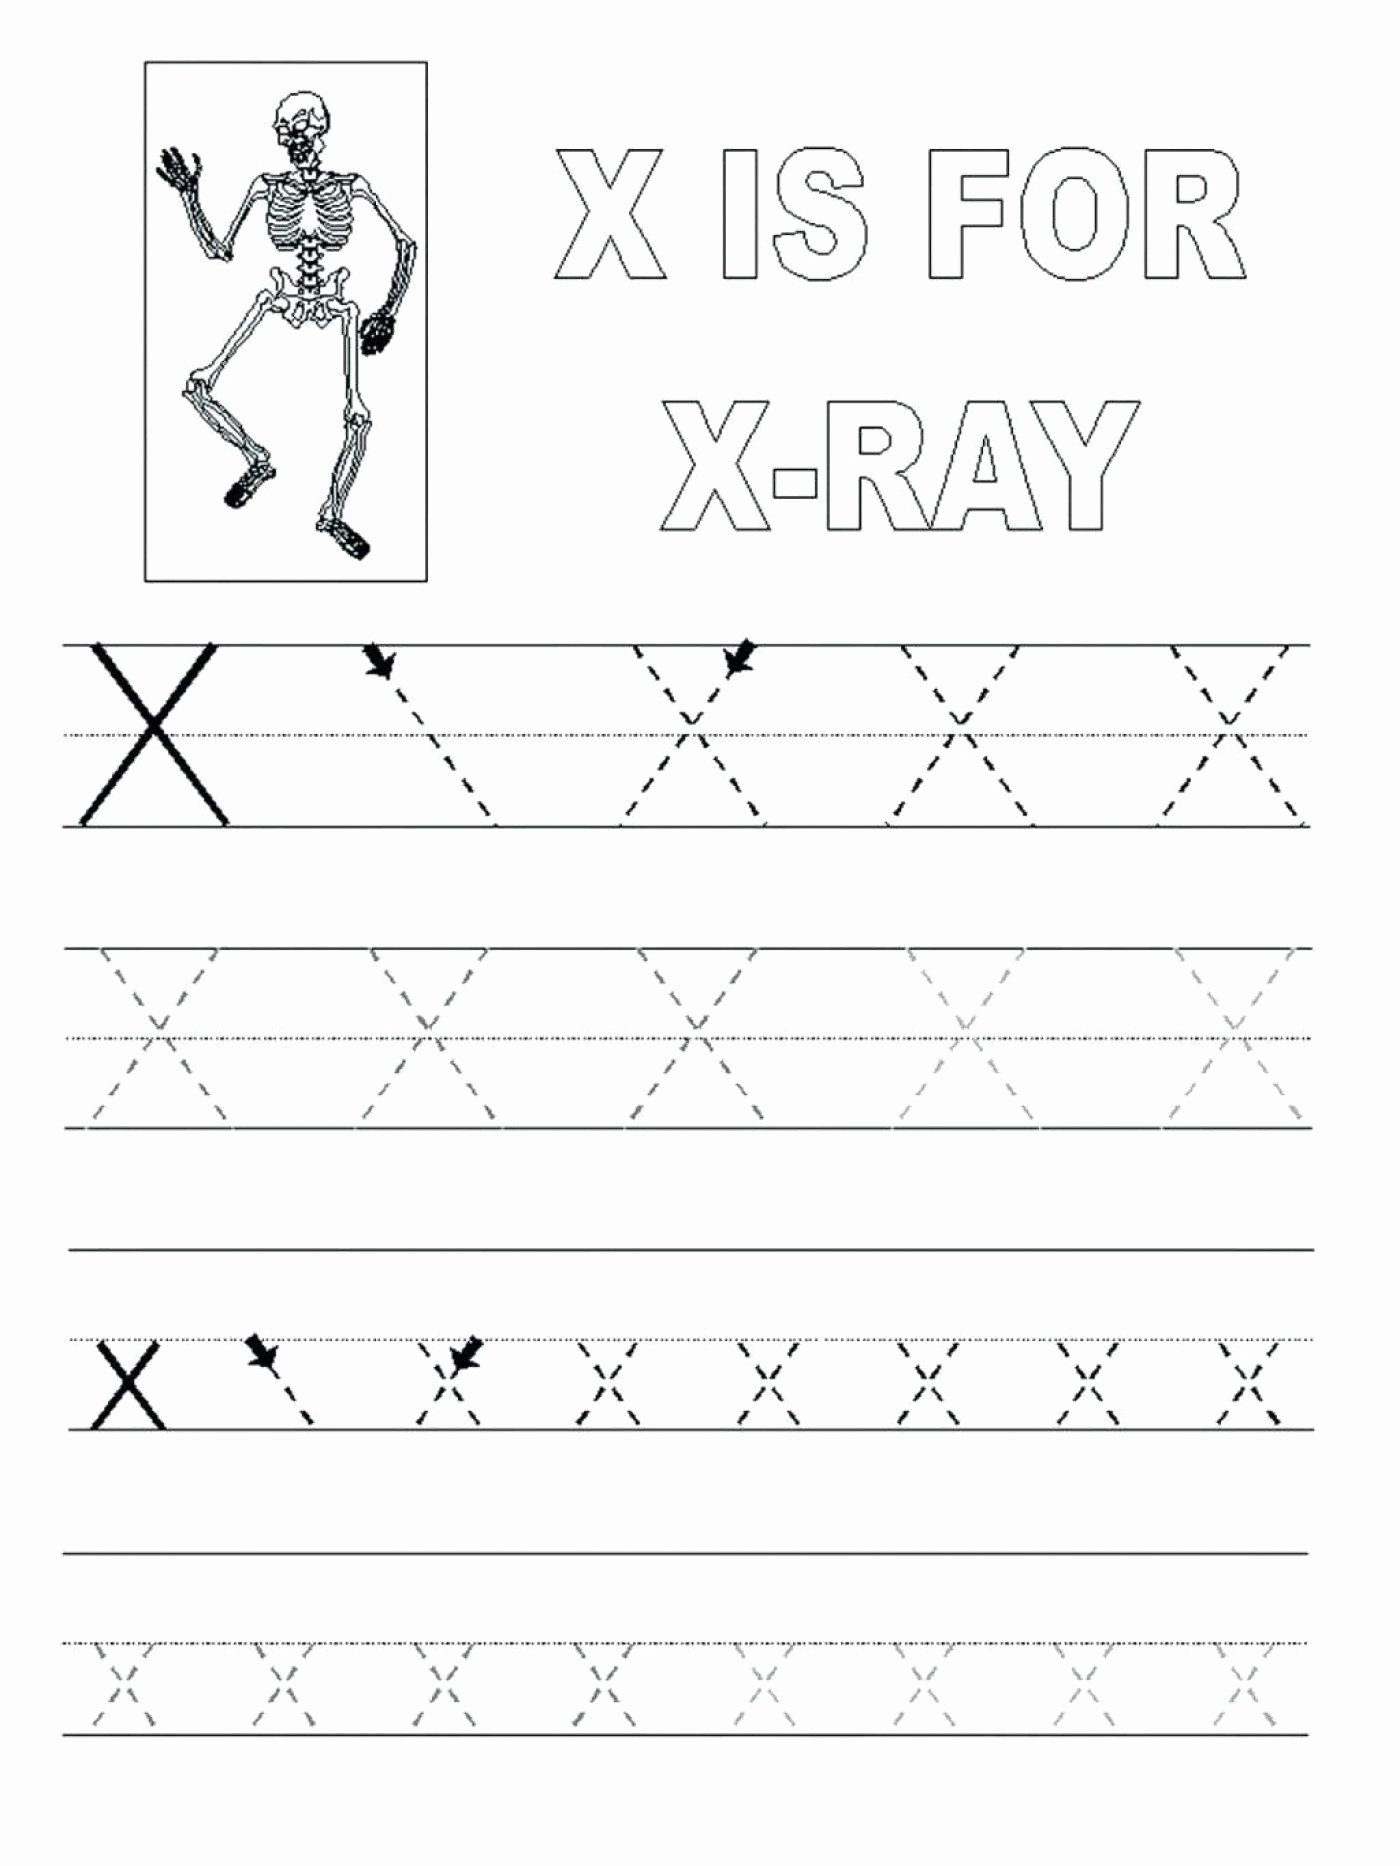 Printable Letter X Worksheets for Preschoolers Awesome Worksheets Pin Printable Alphabet Worksheets Letter